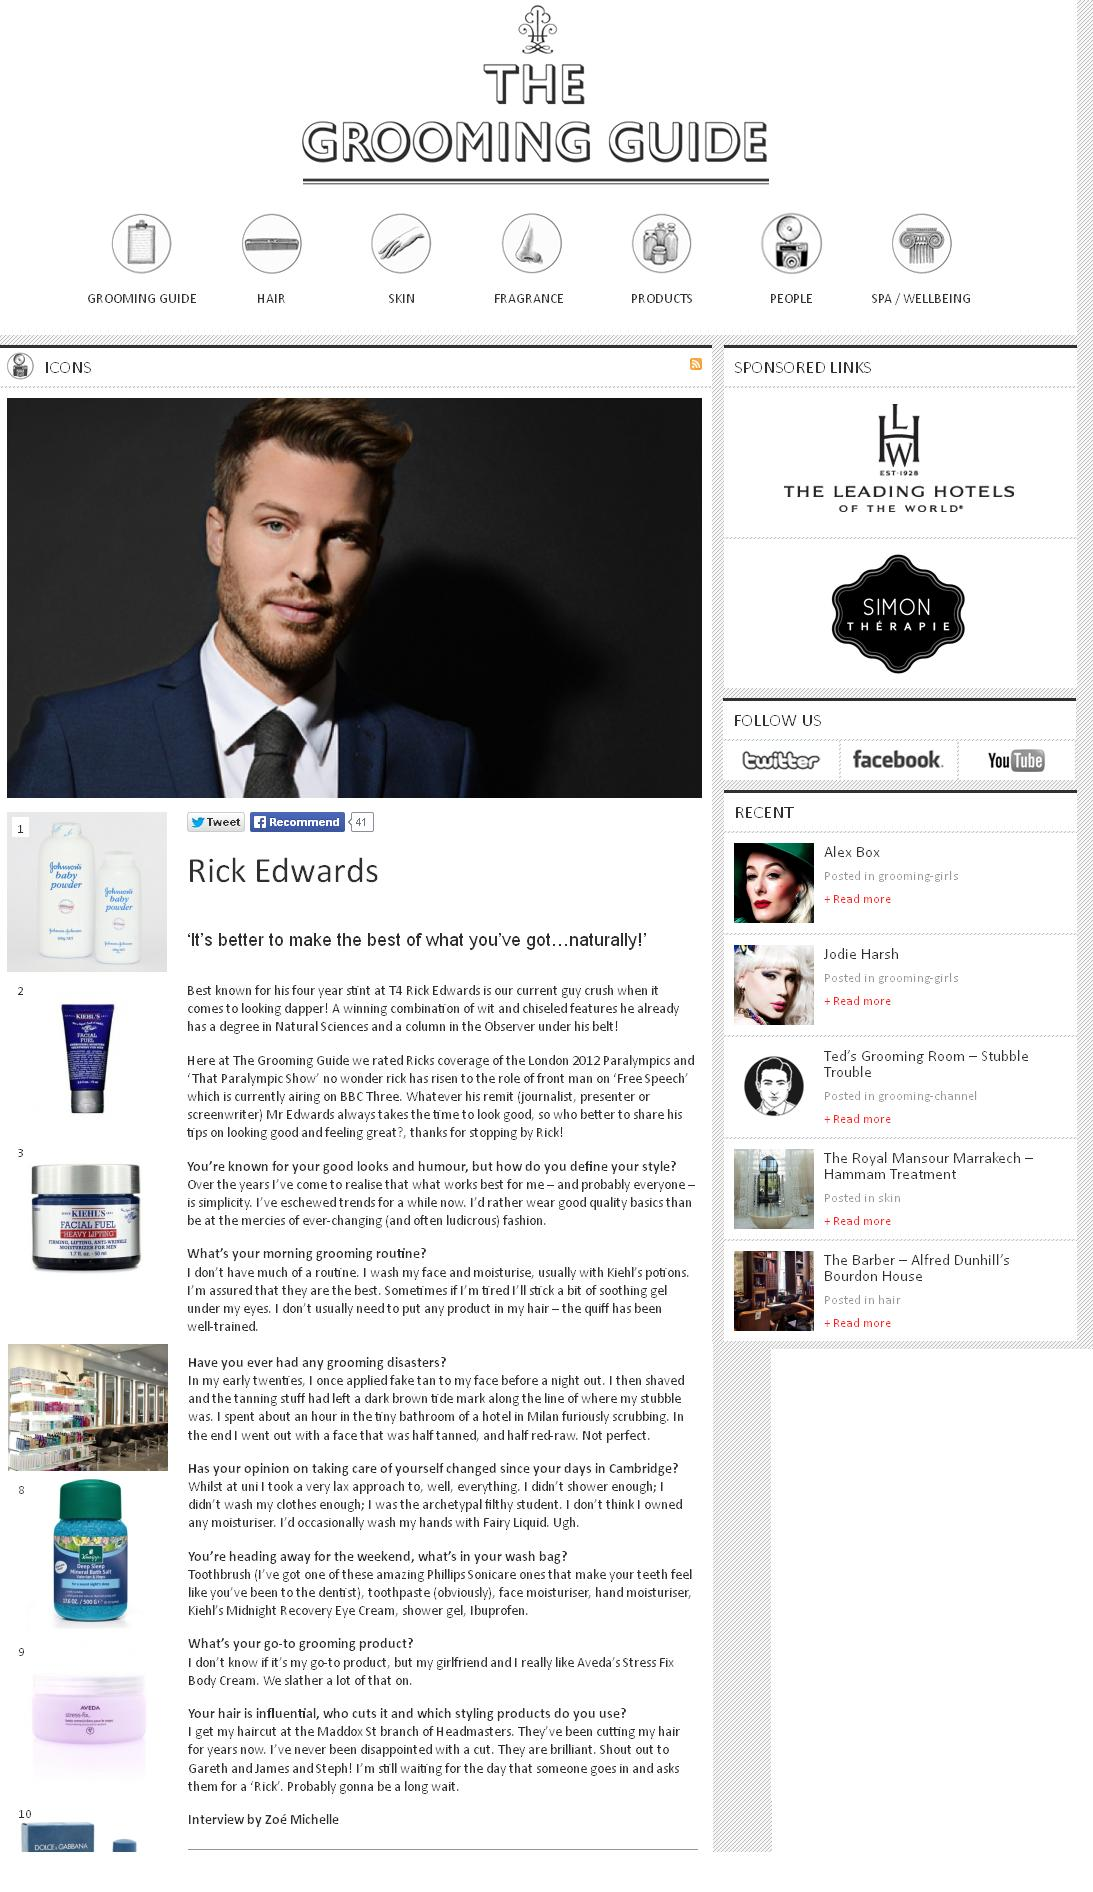 Grooming Guide Interview with Rick Edwards